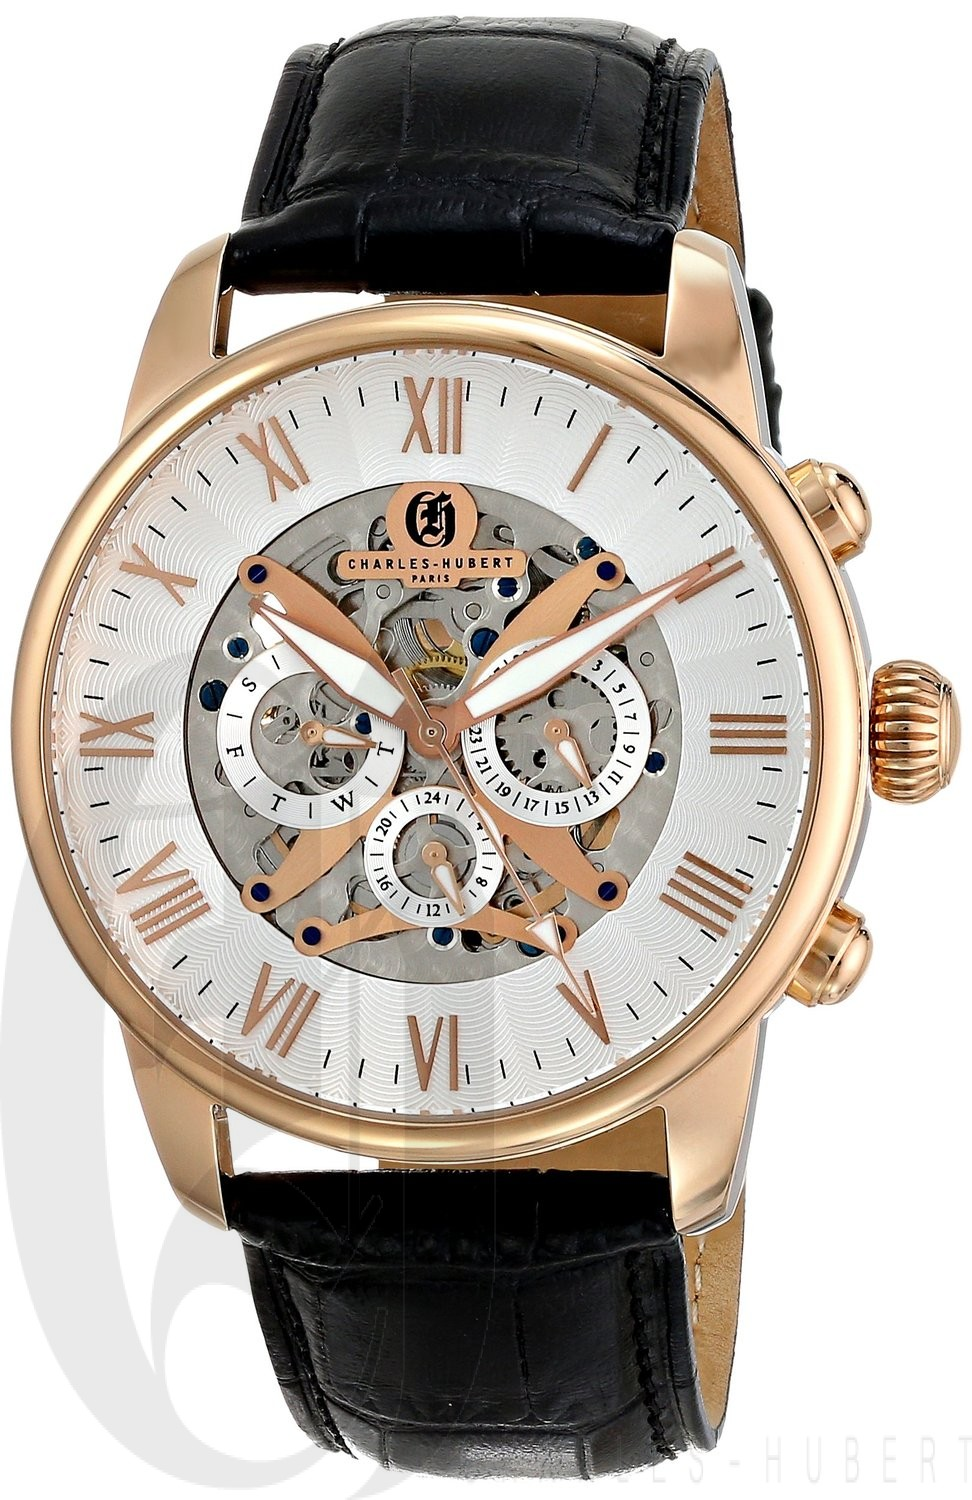 Charles-Hubert Paris Men's Rose-Gold Plated Stainless Steel Multifunction Automatic Watch